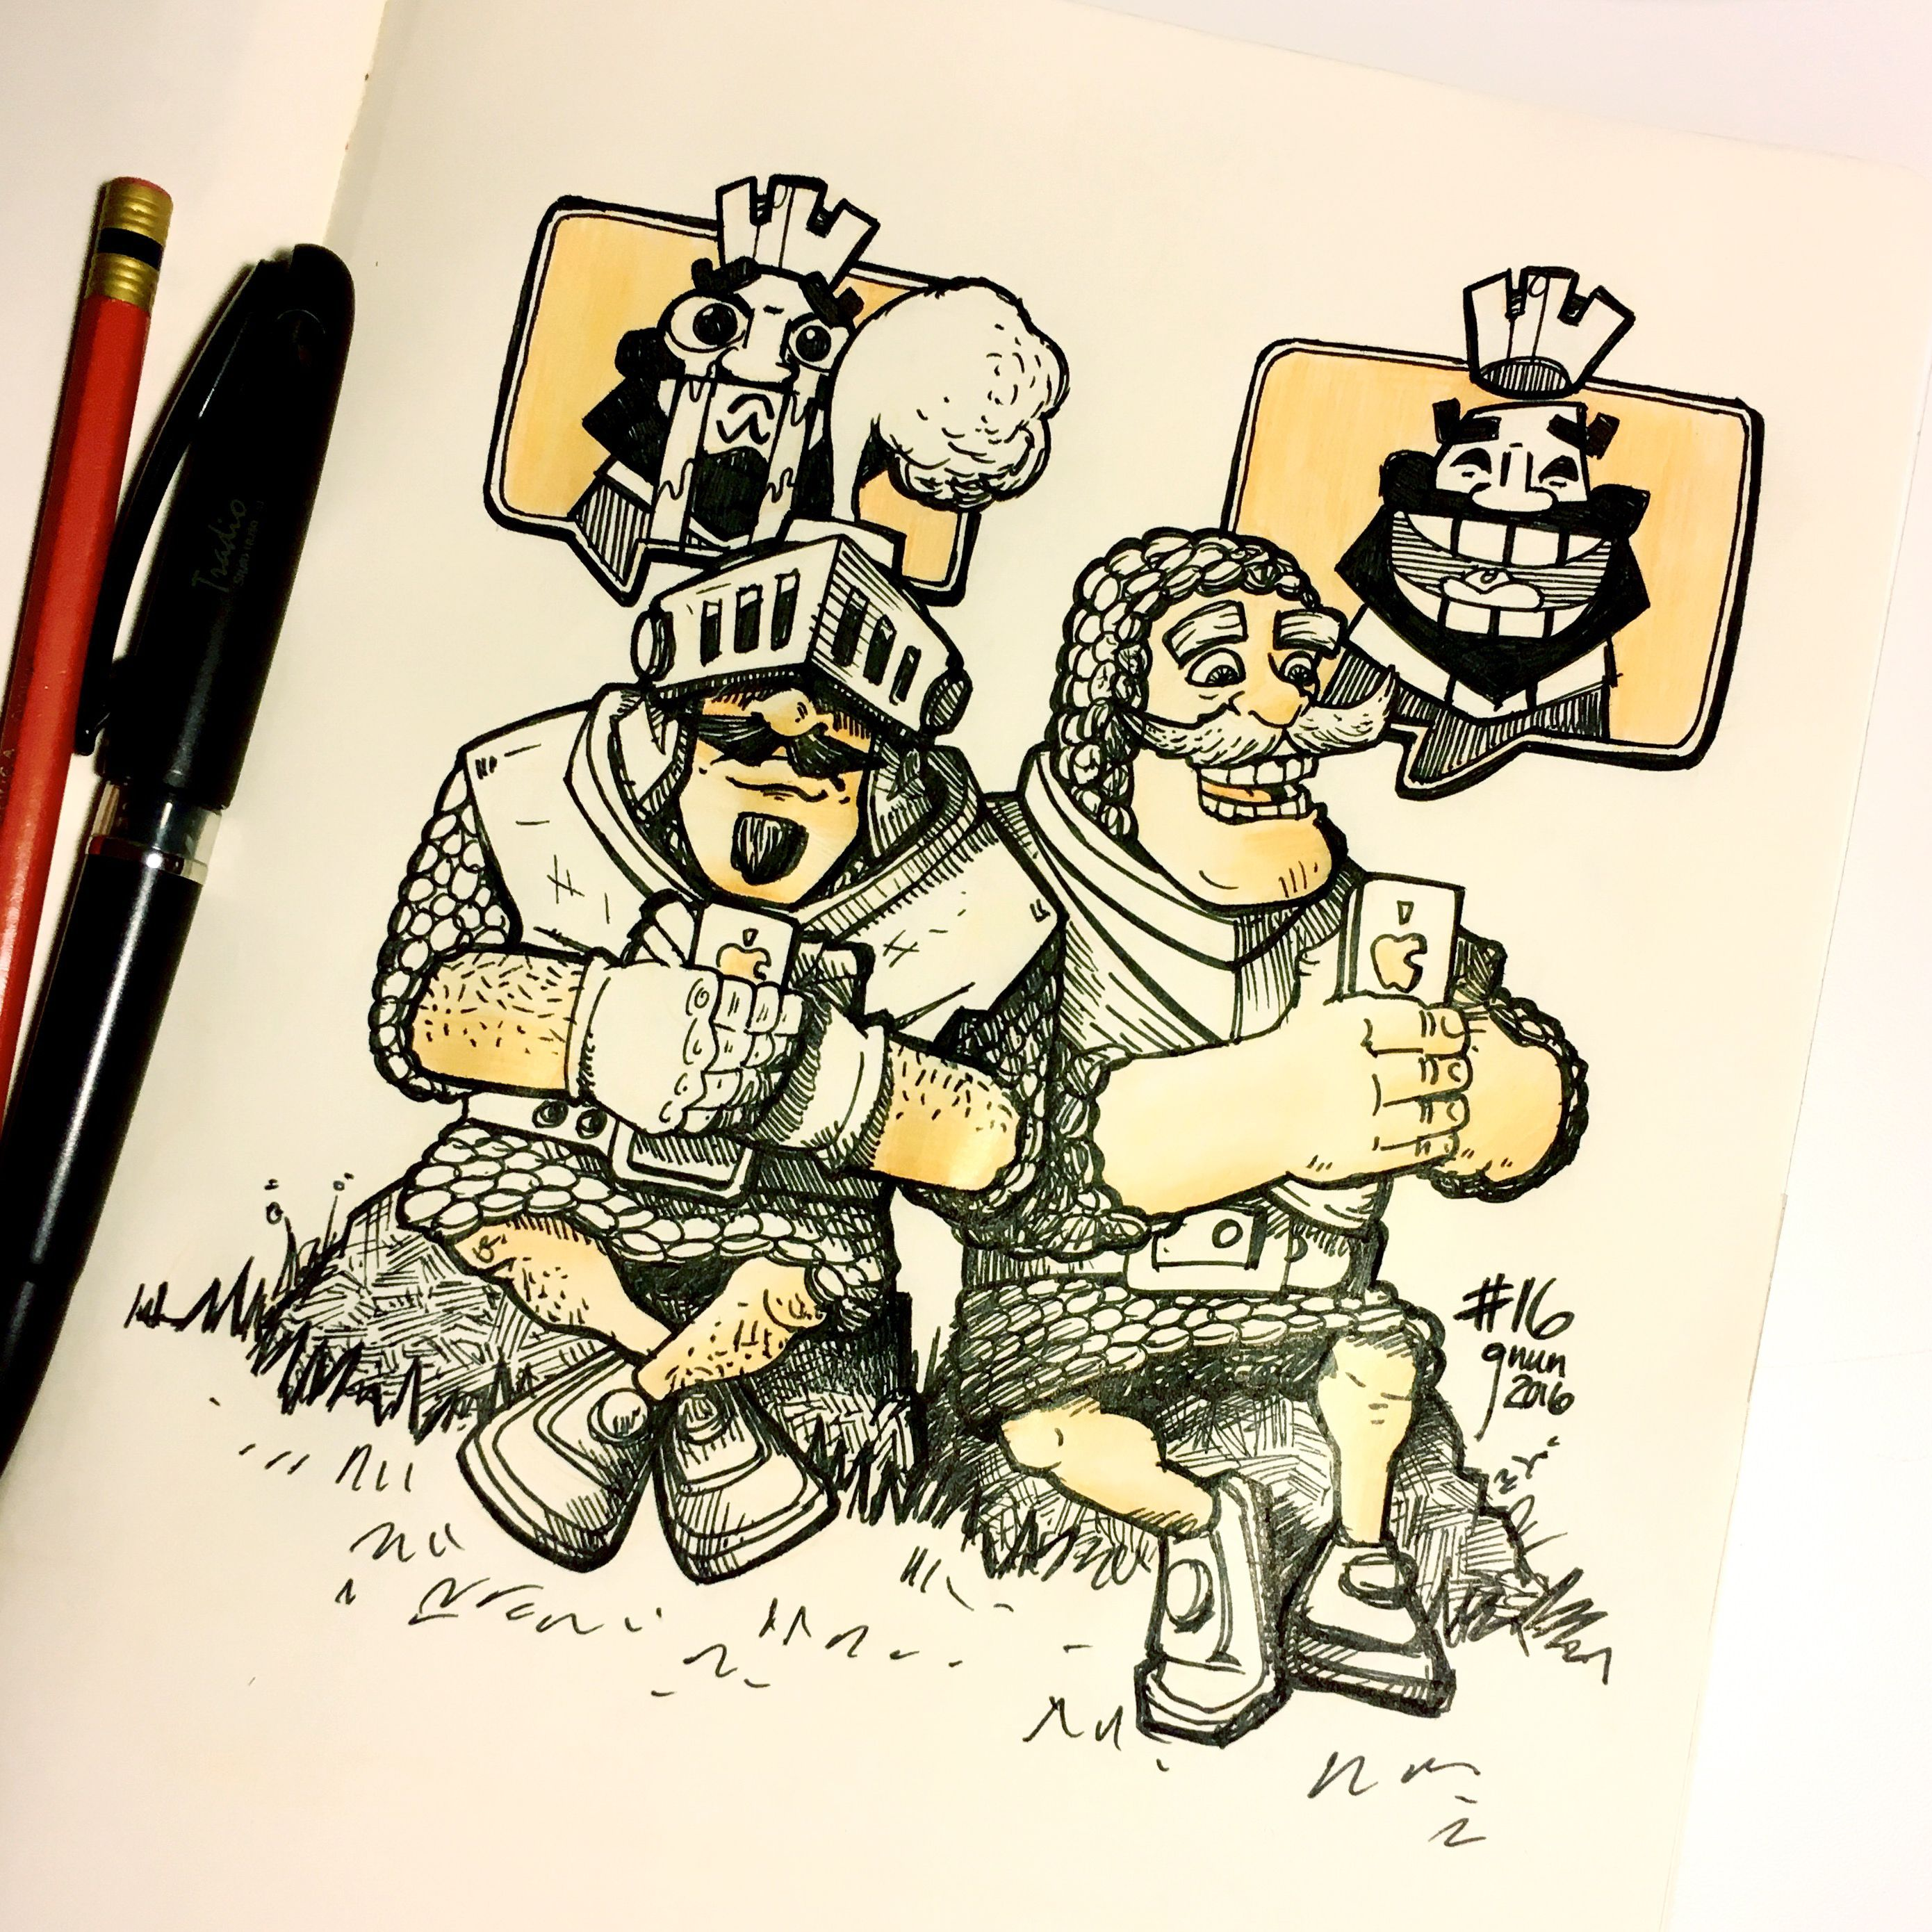 Inktober Drawing 16  Another Drawing Of Clash Royale Prince Vs Knight  #inktober